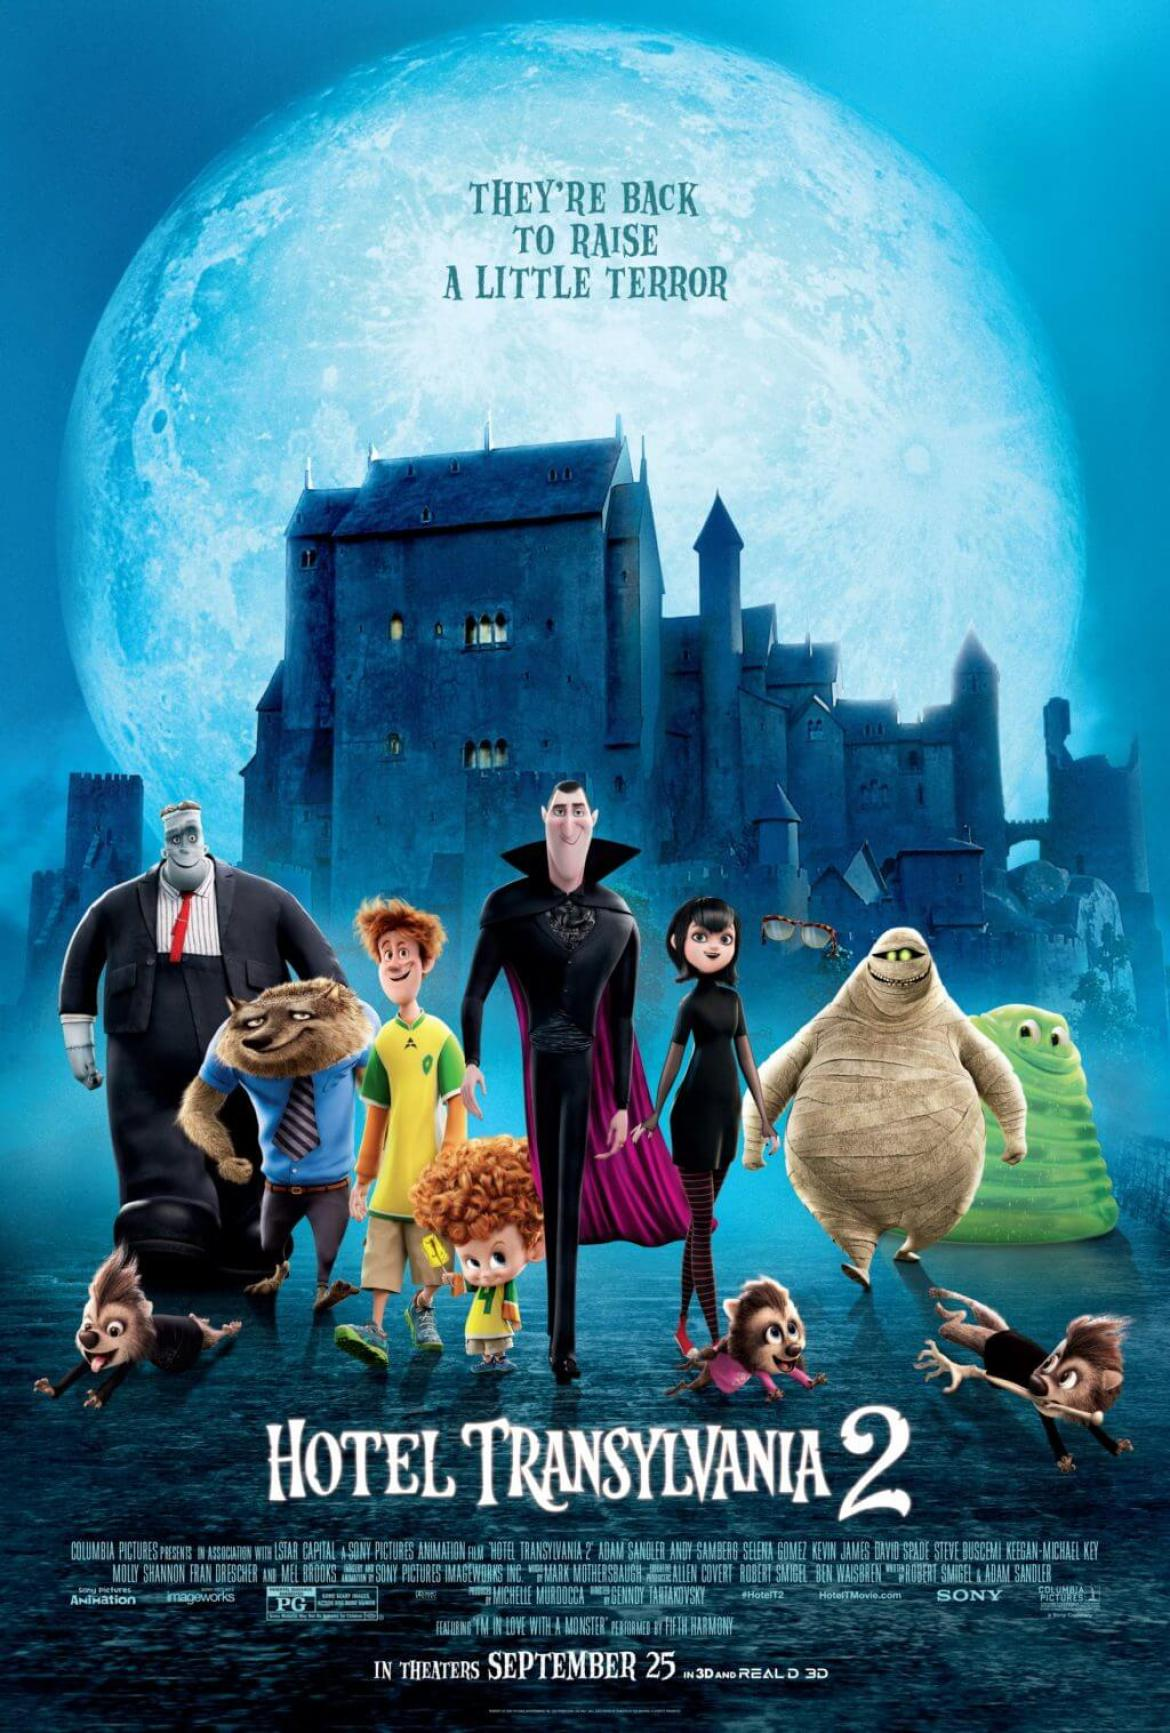 Win a Movie Prize Pack for Hotel Transylvania 2! #HotelT2 #ad | The TipToe Fairy